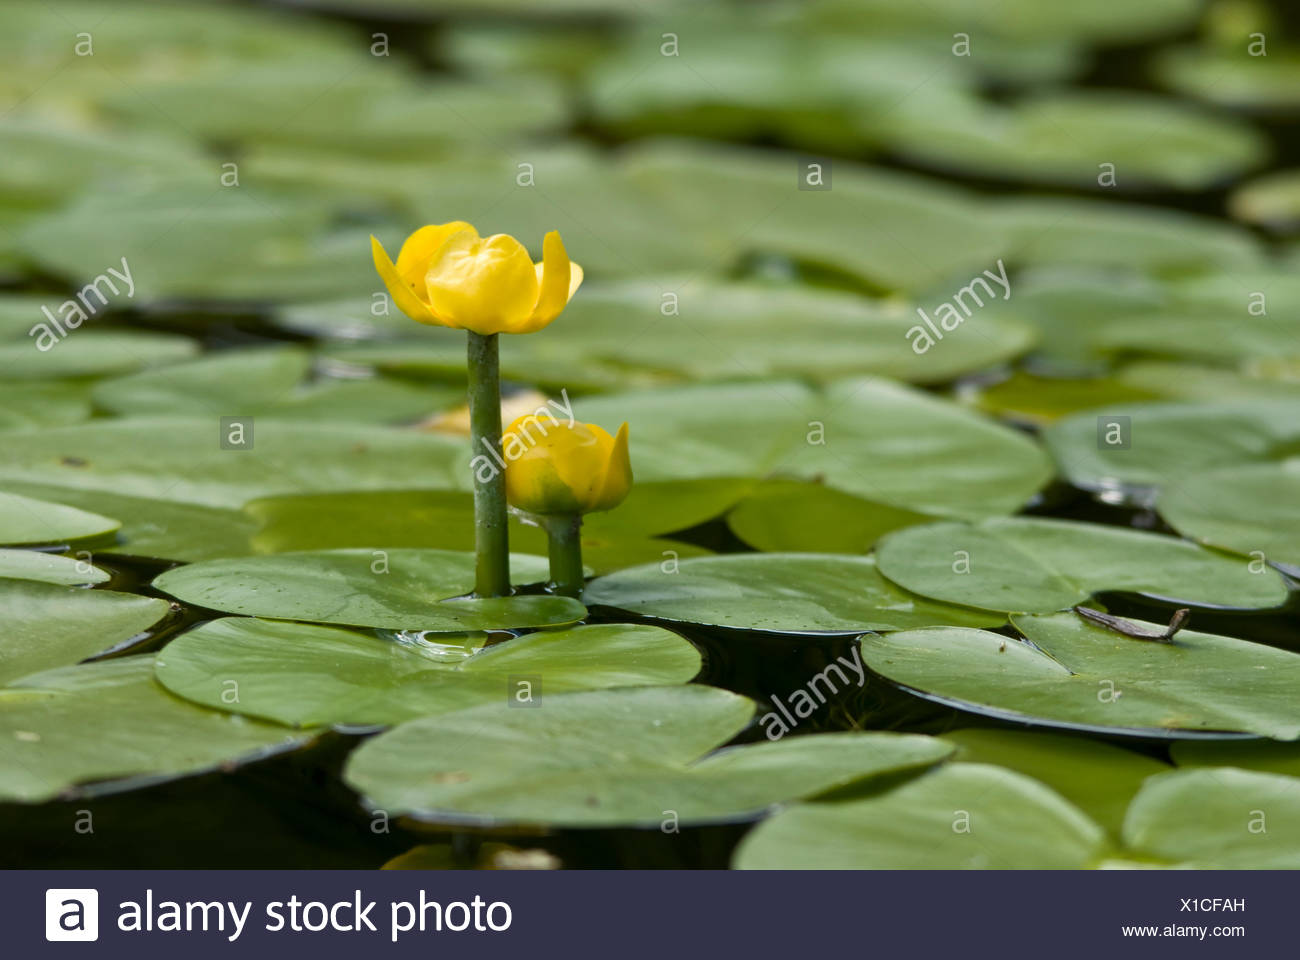 European Yellow Pond Lily Yellow Water Lily Nuphar Lutea With